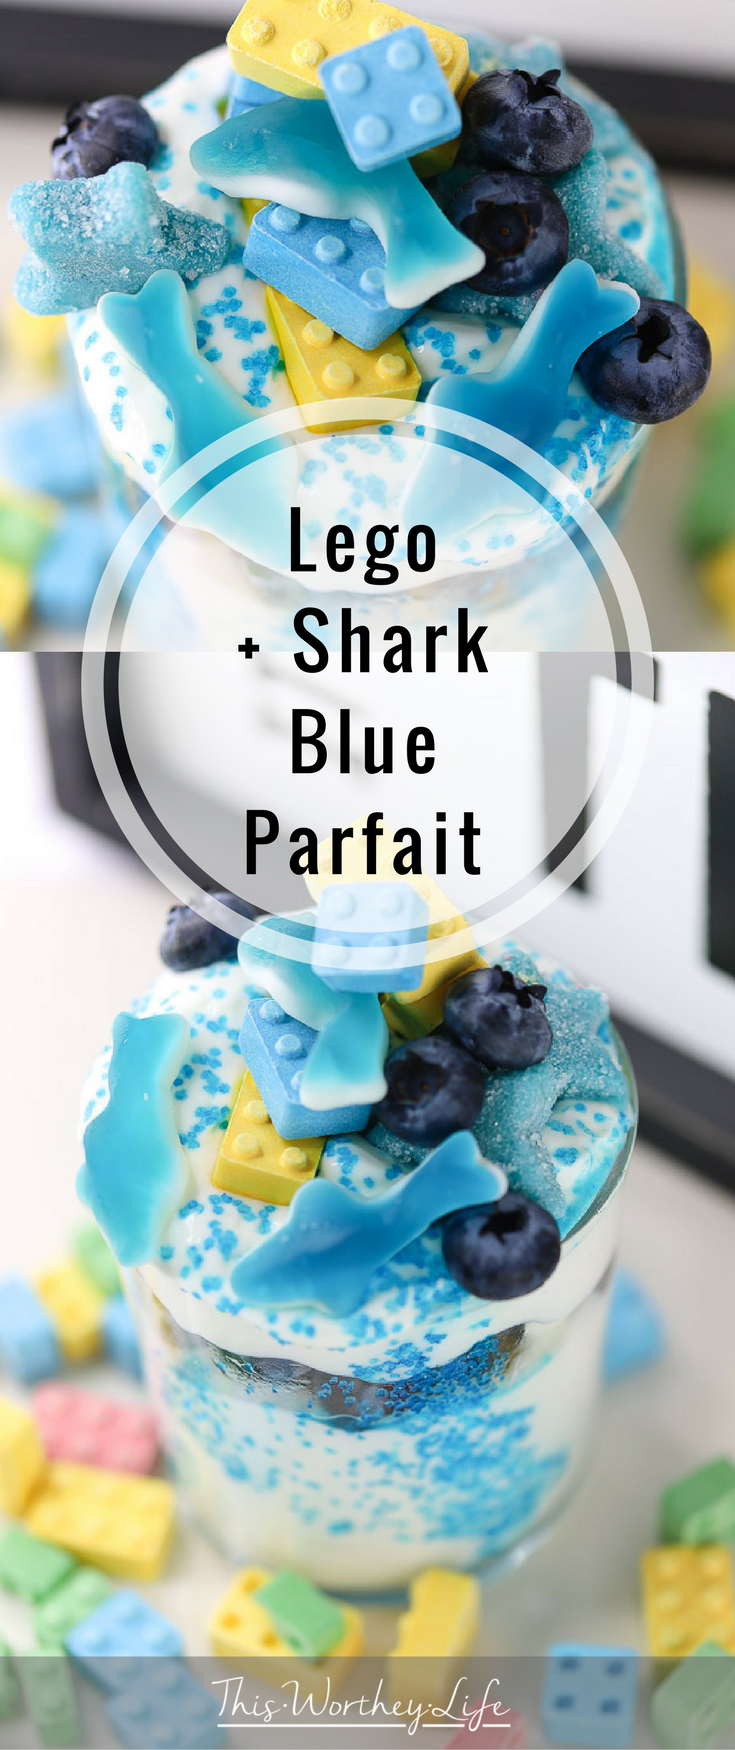 The Best Treats For Youngs Boys- Create a fun and healthy snack for the kids. This lego + blue shark parfait is a fun treat any child will enjoy. Lego toys are super popular with kids, and so will this lego food recipe idea! It's a great lego birthday snack, or to serve during shark week!